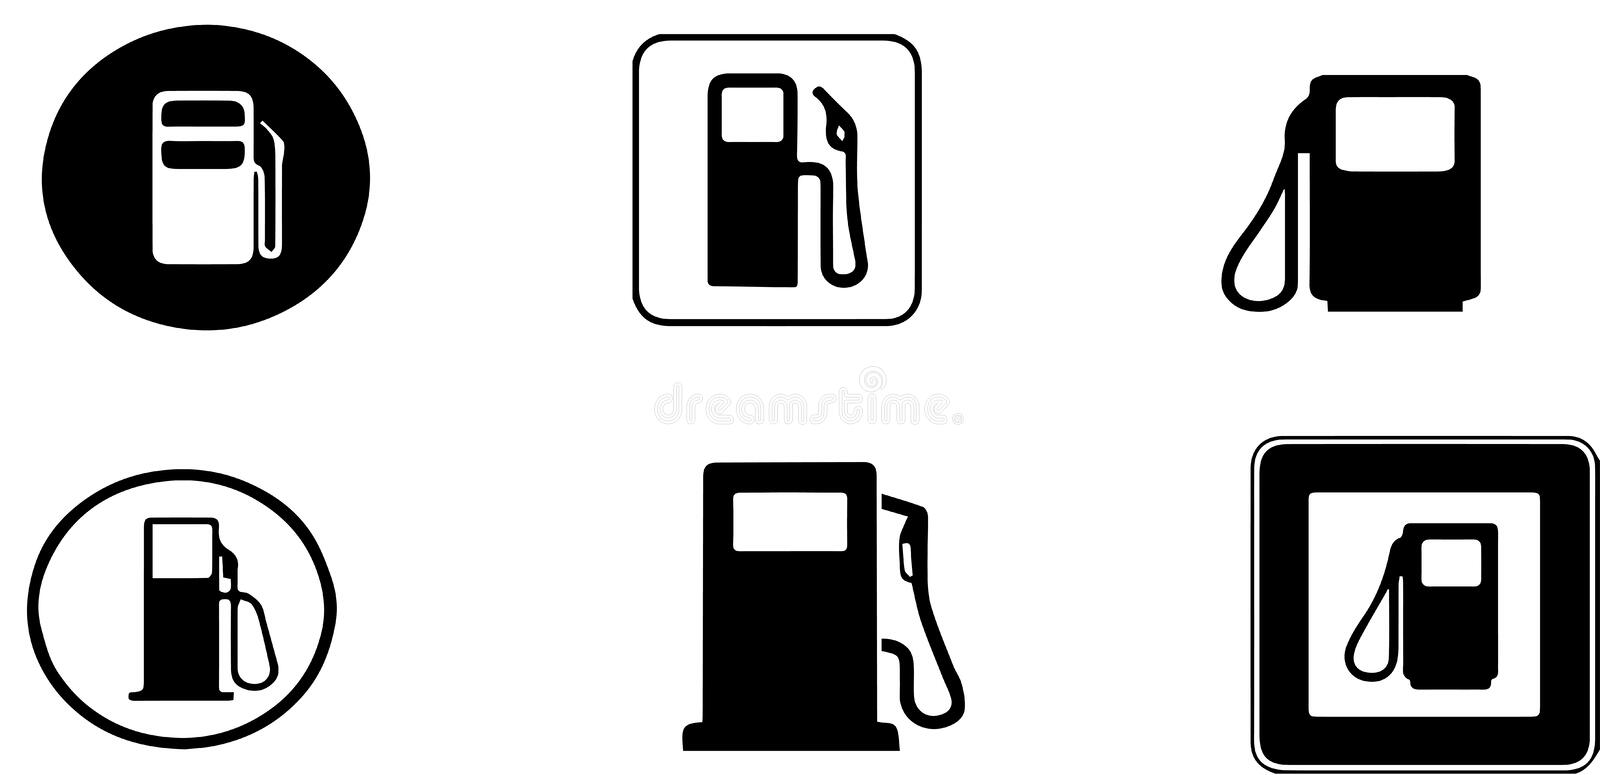 Fuel Refill Stand Icon, Flat Style Stock Vector